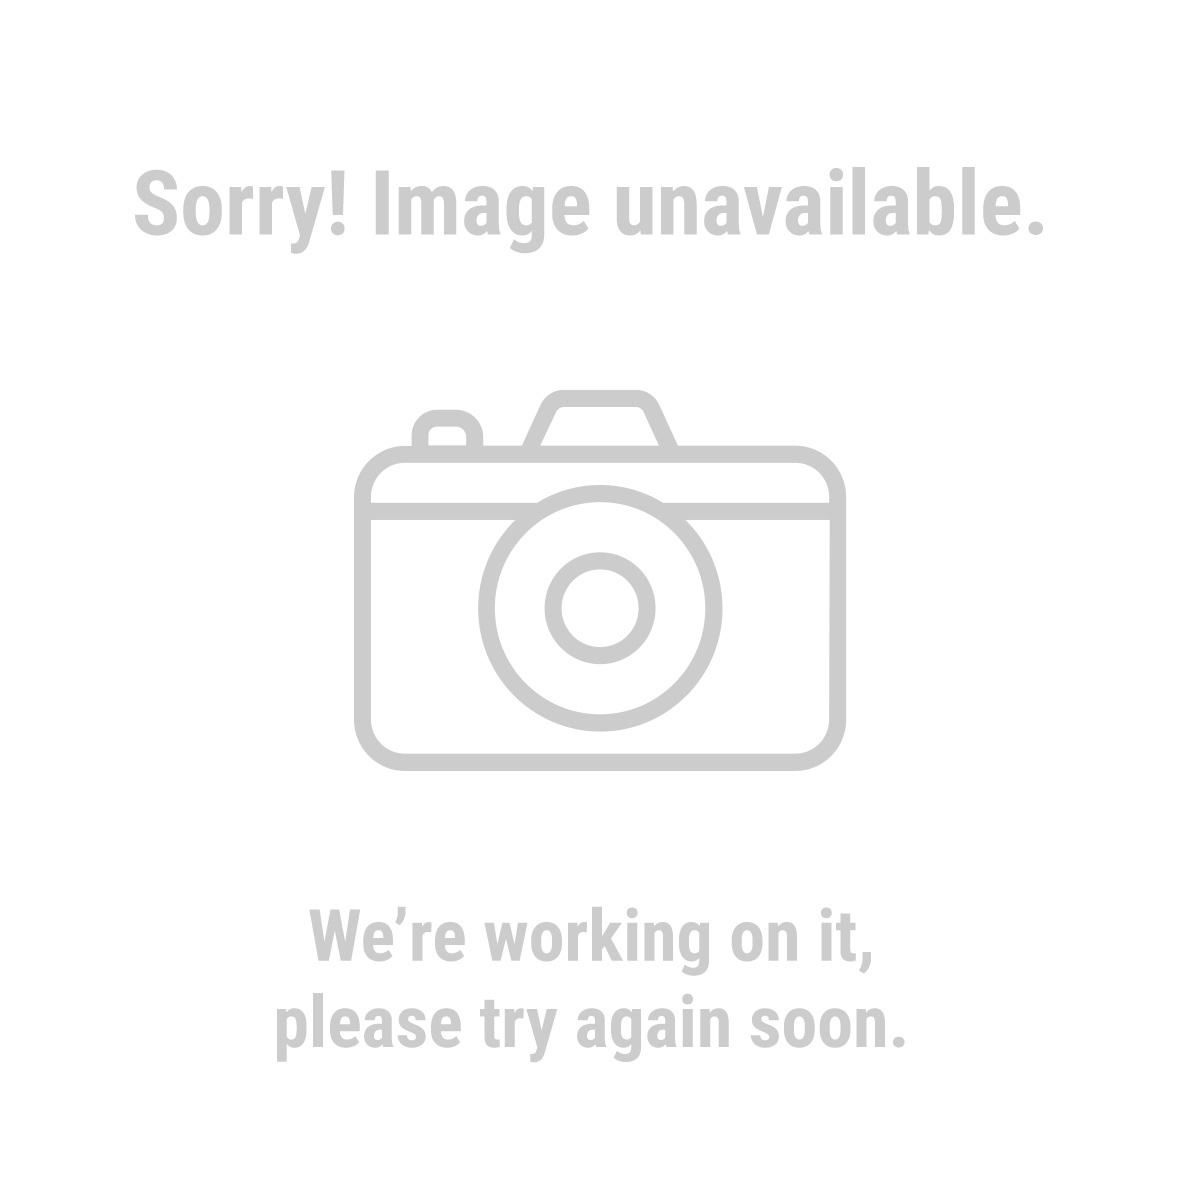 HFT 69122 7 ft. 11 in. x 9 ft. 11 in. Blue/Silver Reversible All Purpose/Weather Resistant Tarp